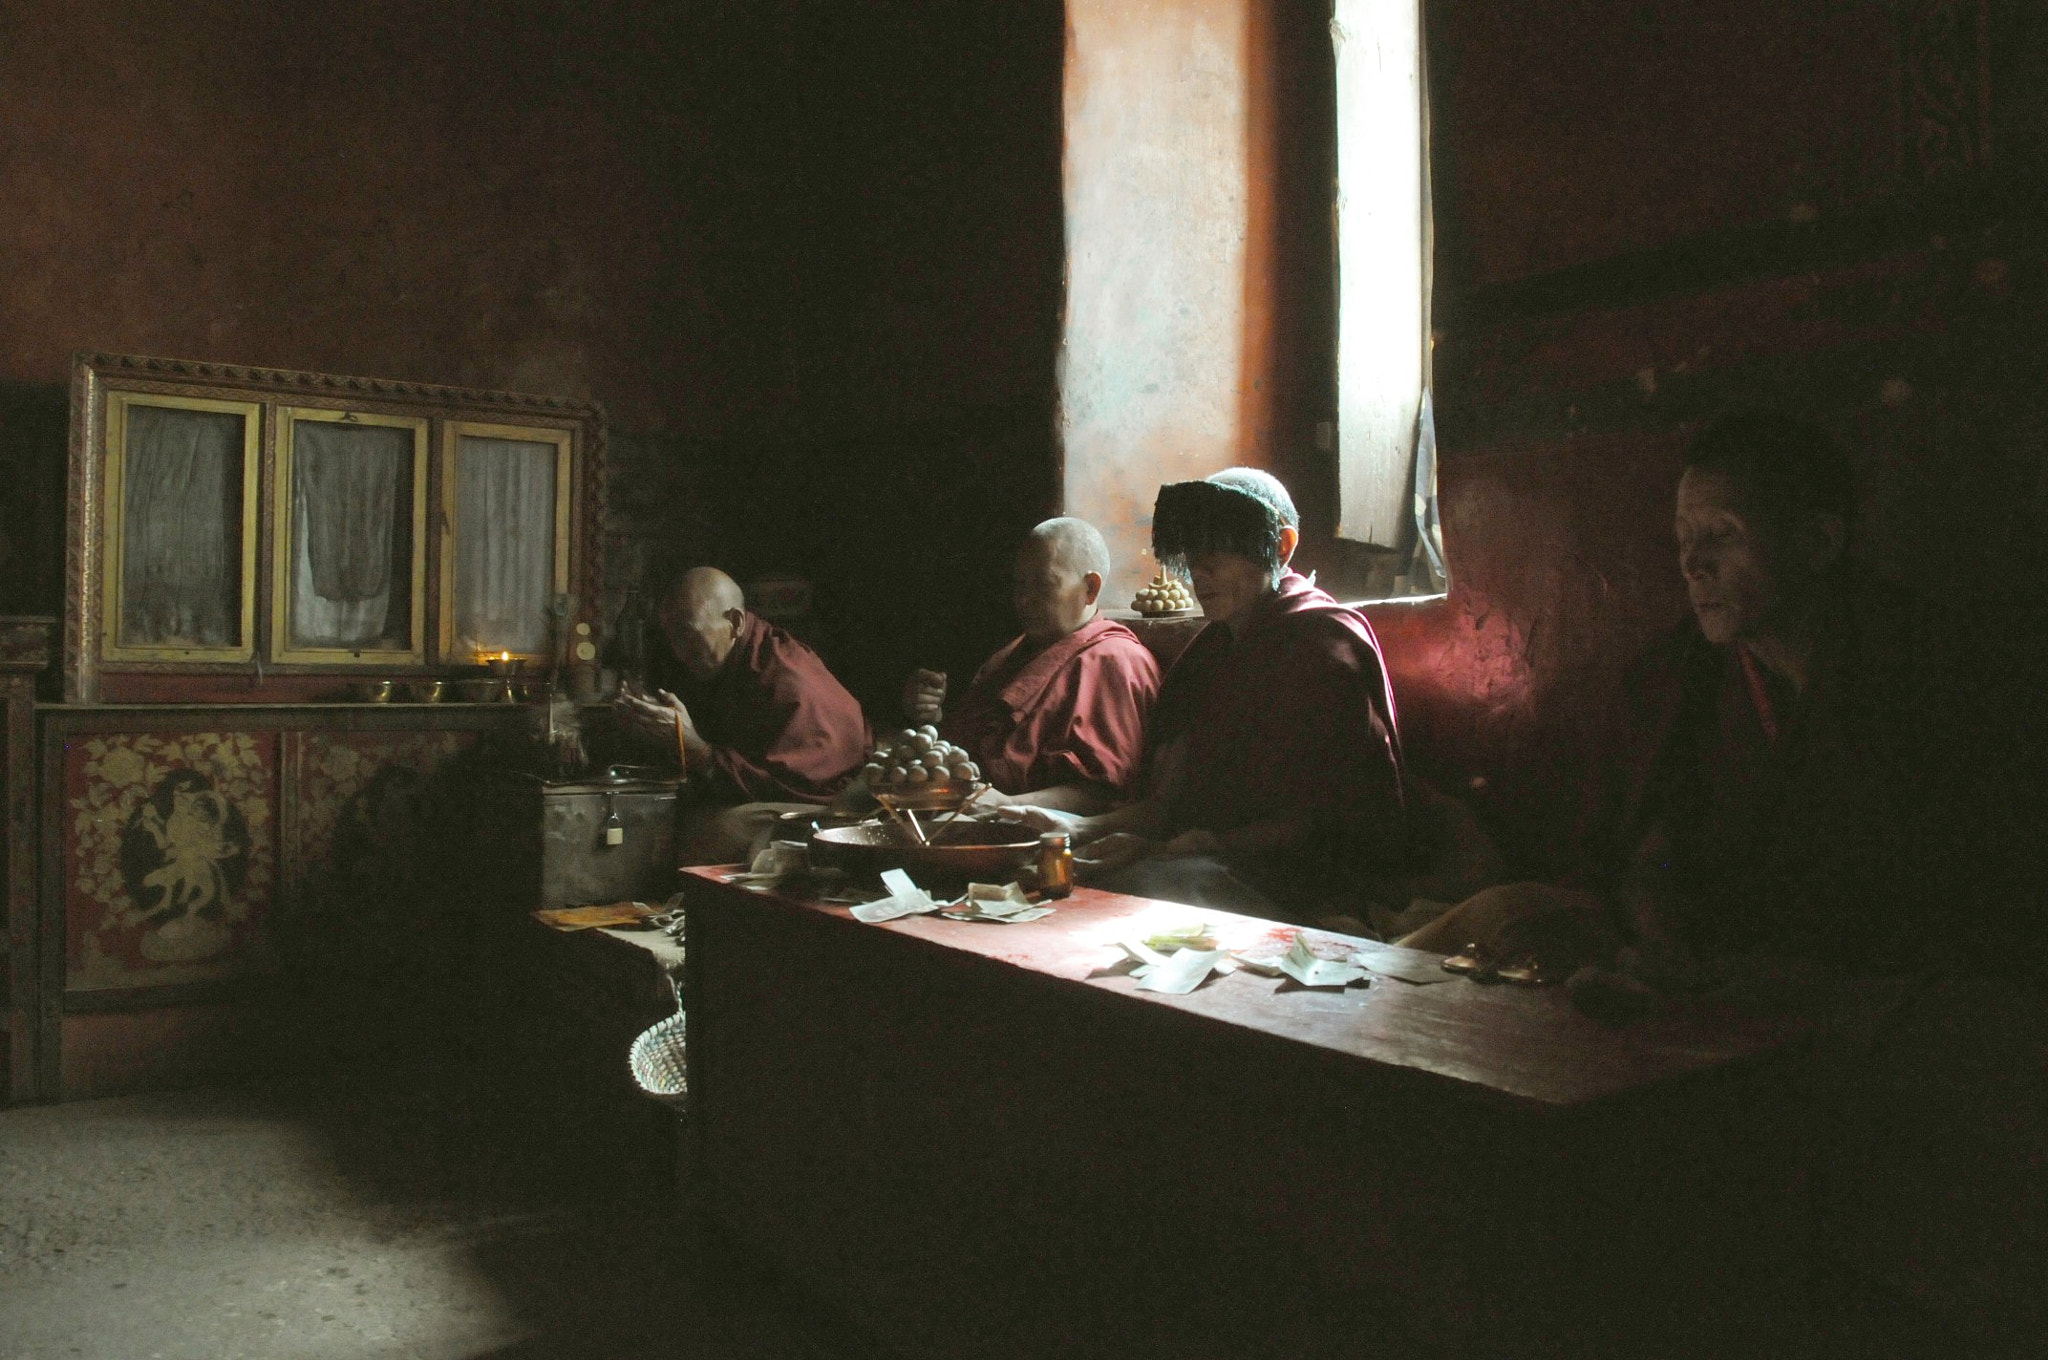 Photograph Monks by Alex van der Lecq on 500px